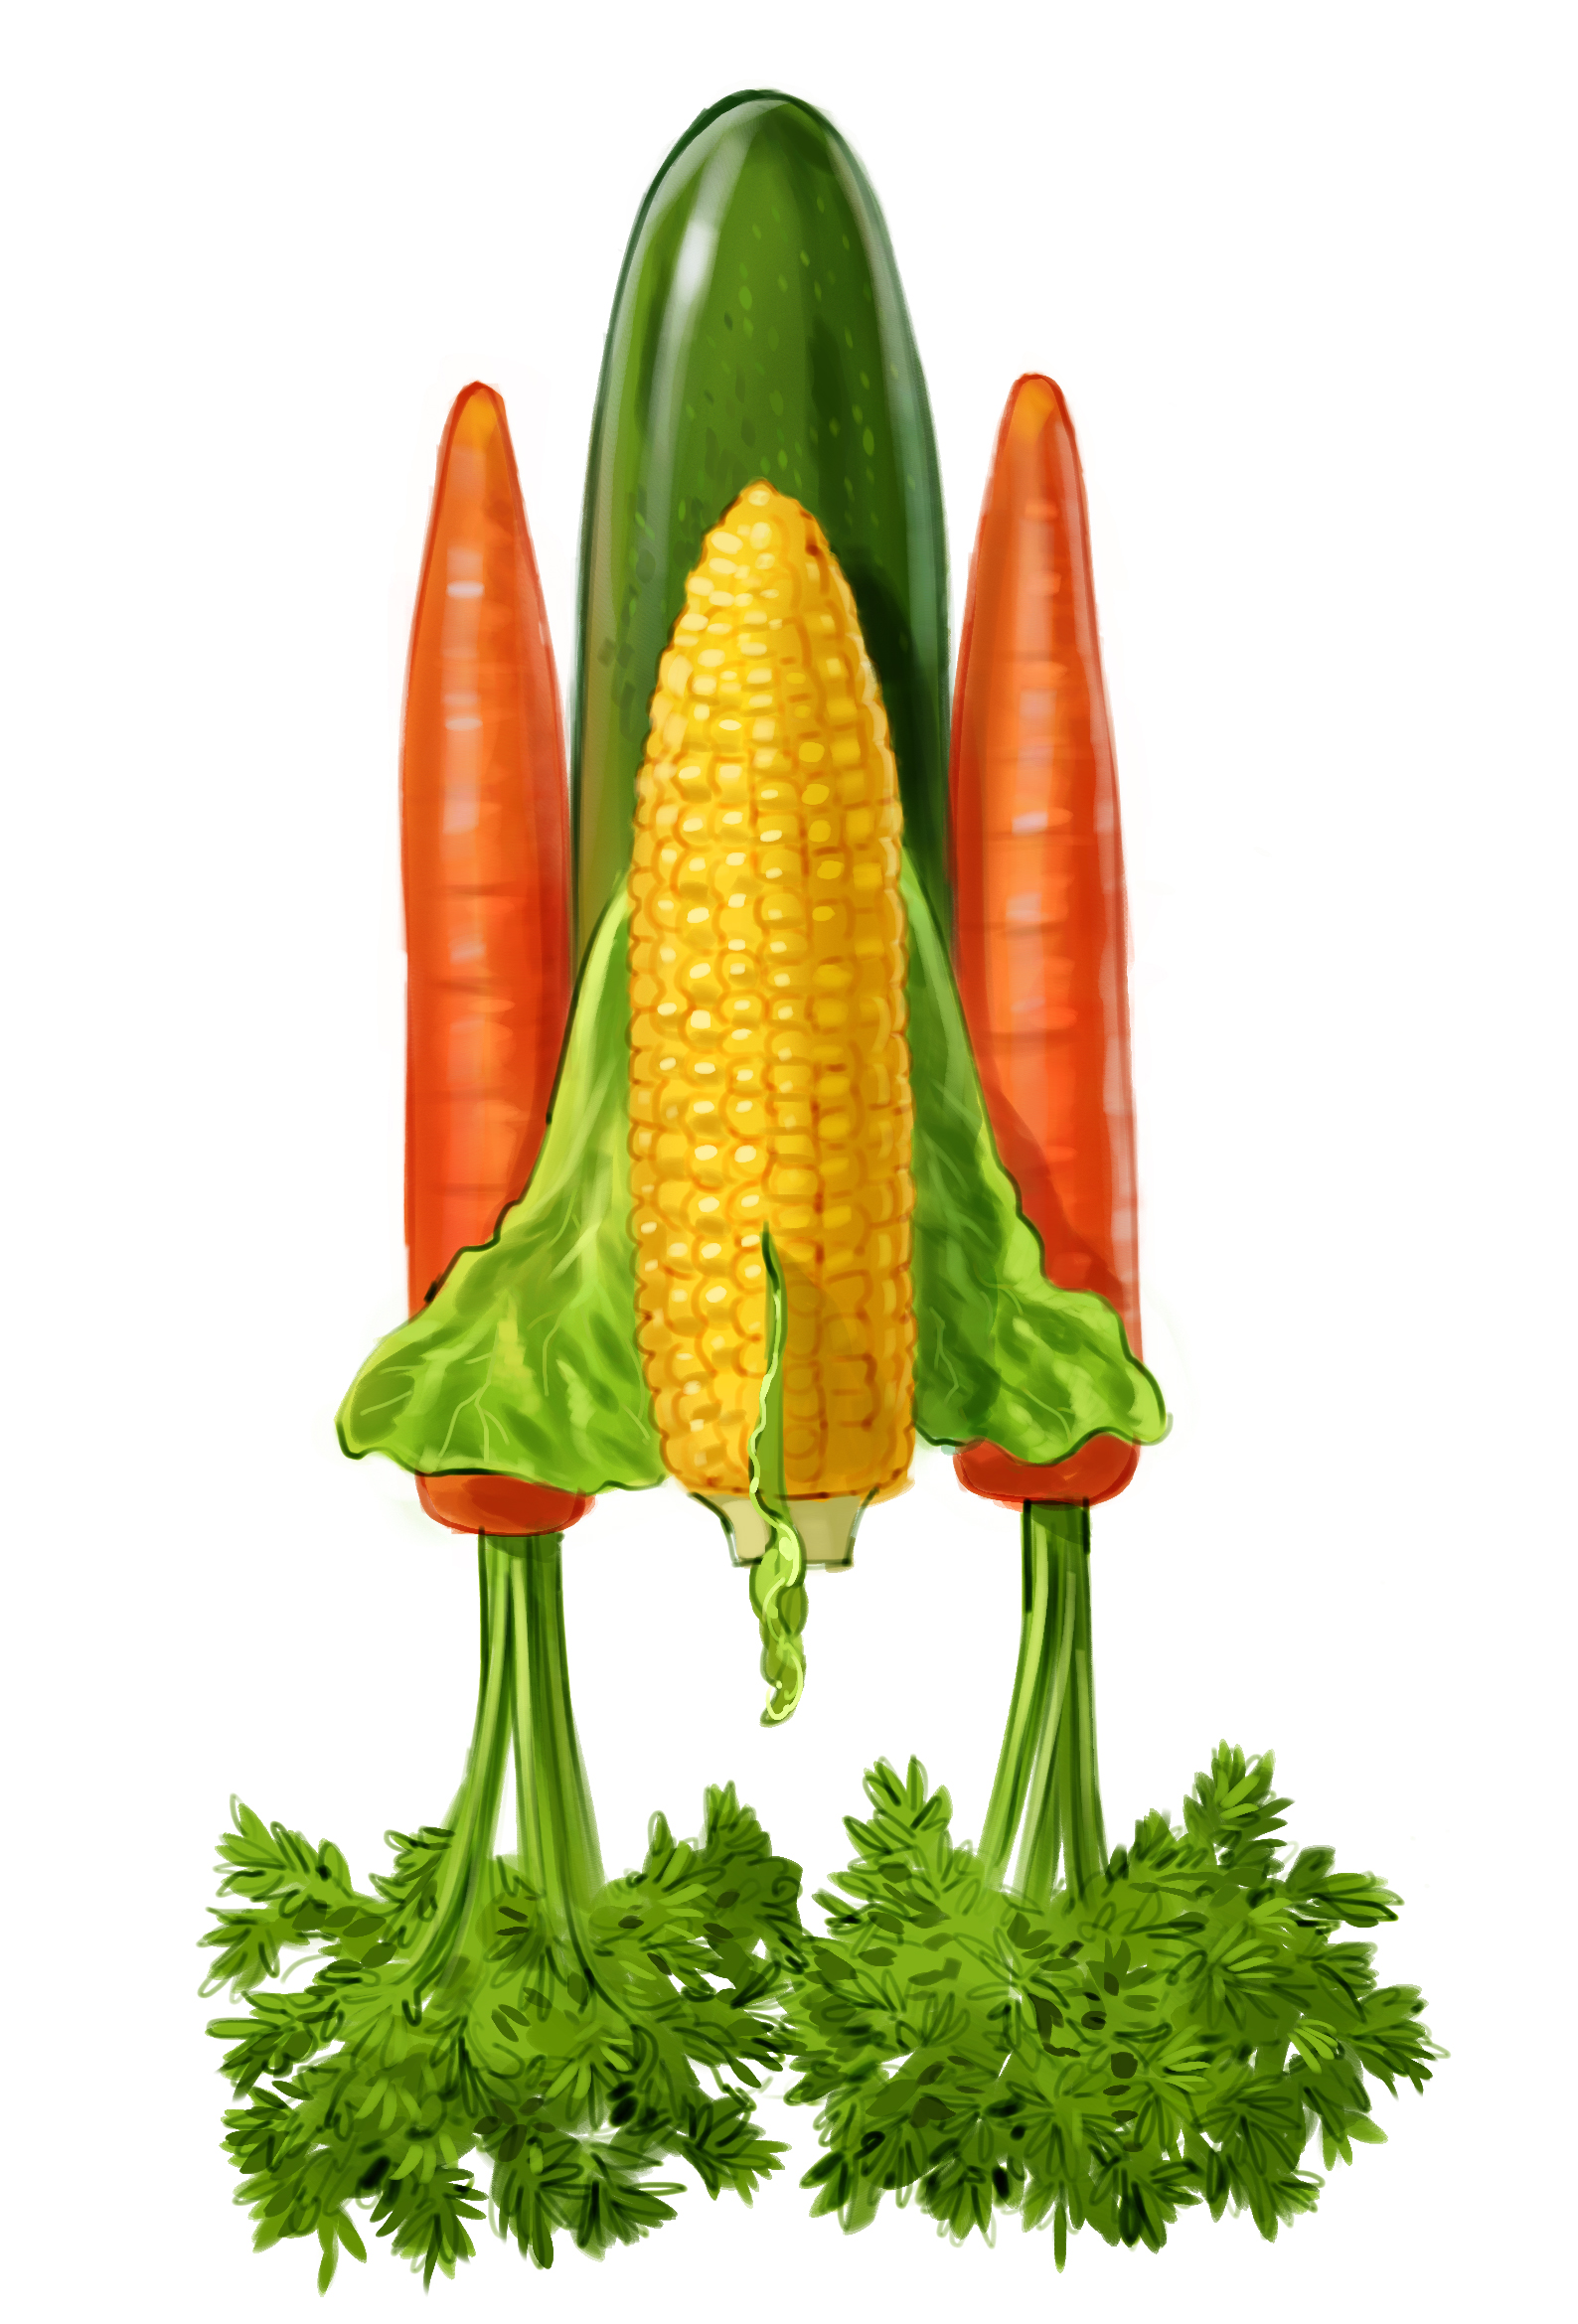 veggie_rocket